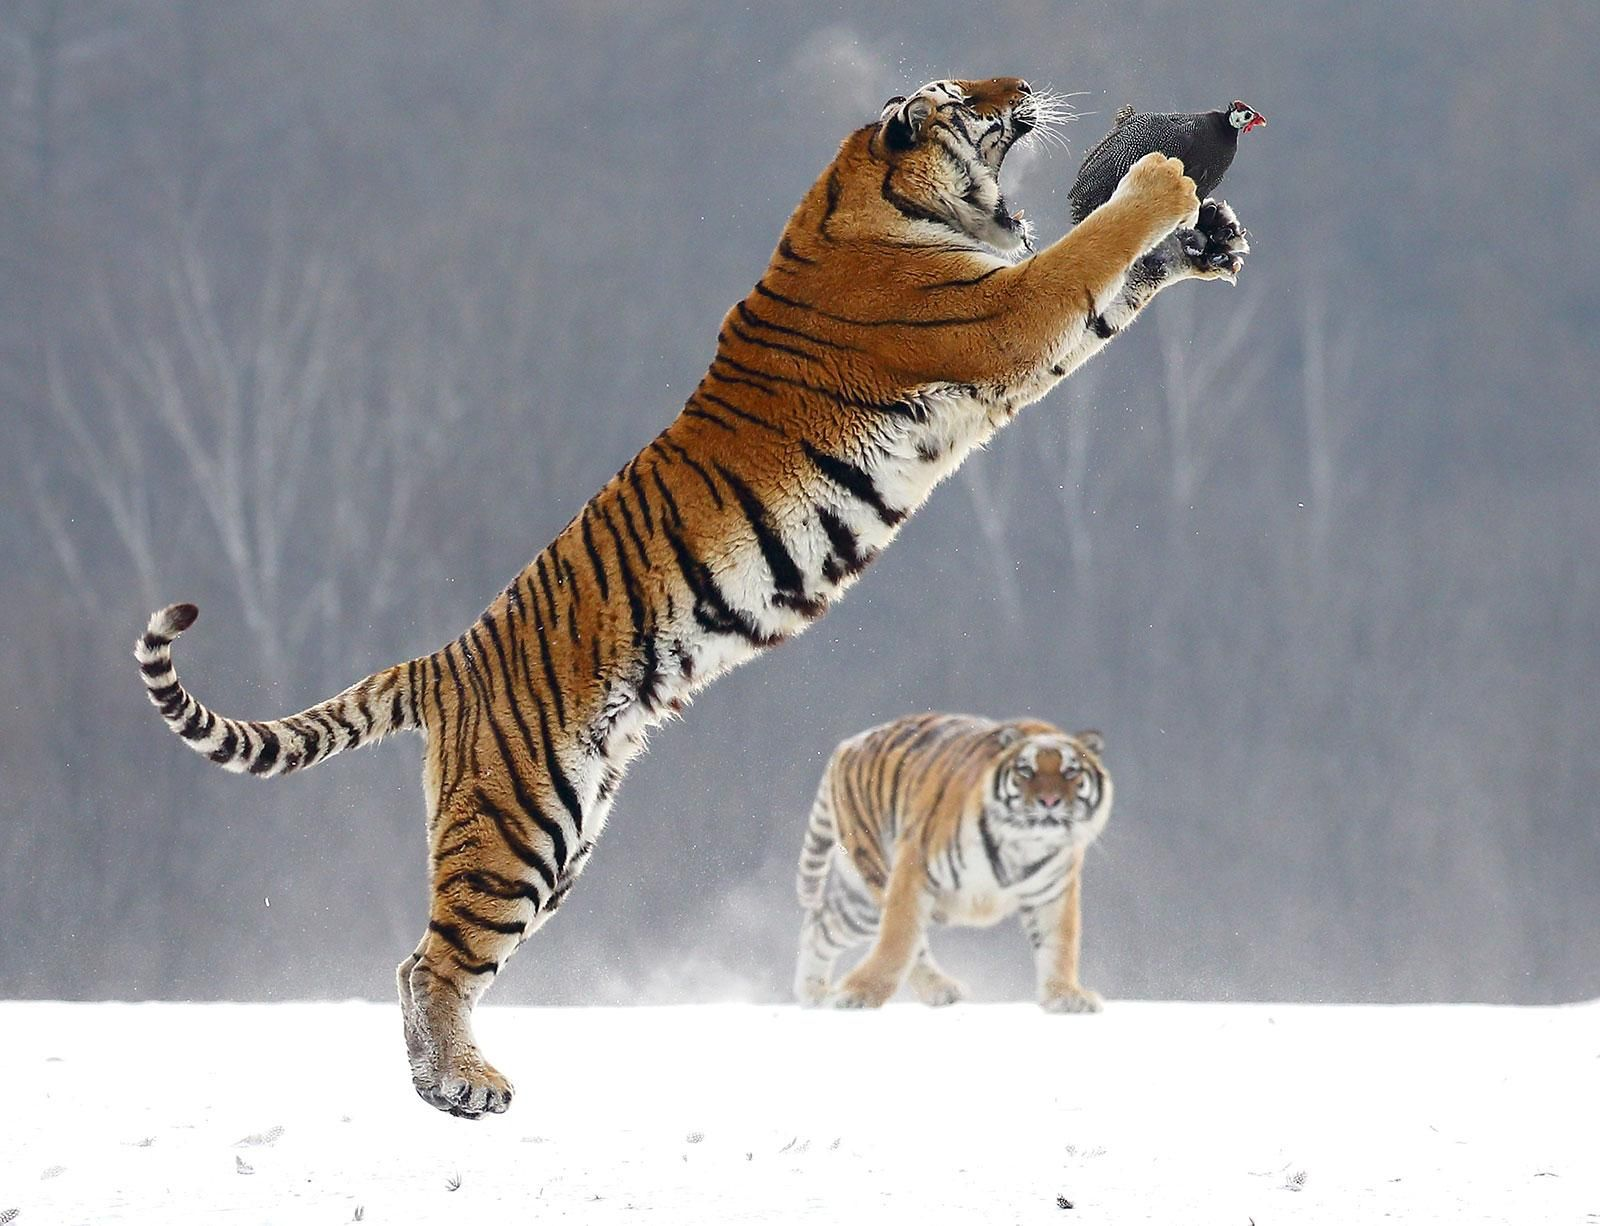 PsBattle A tiger leaping for a bird